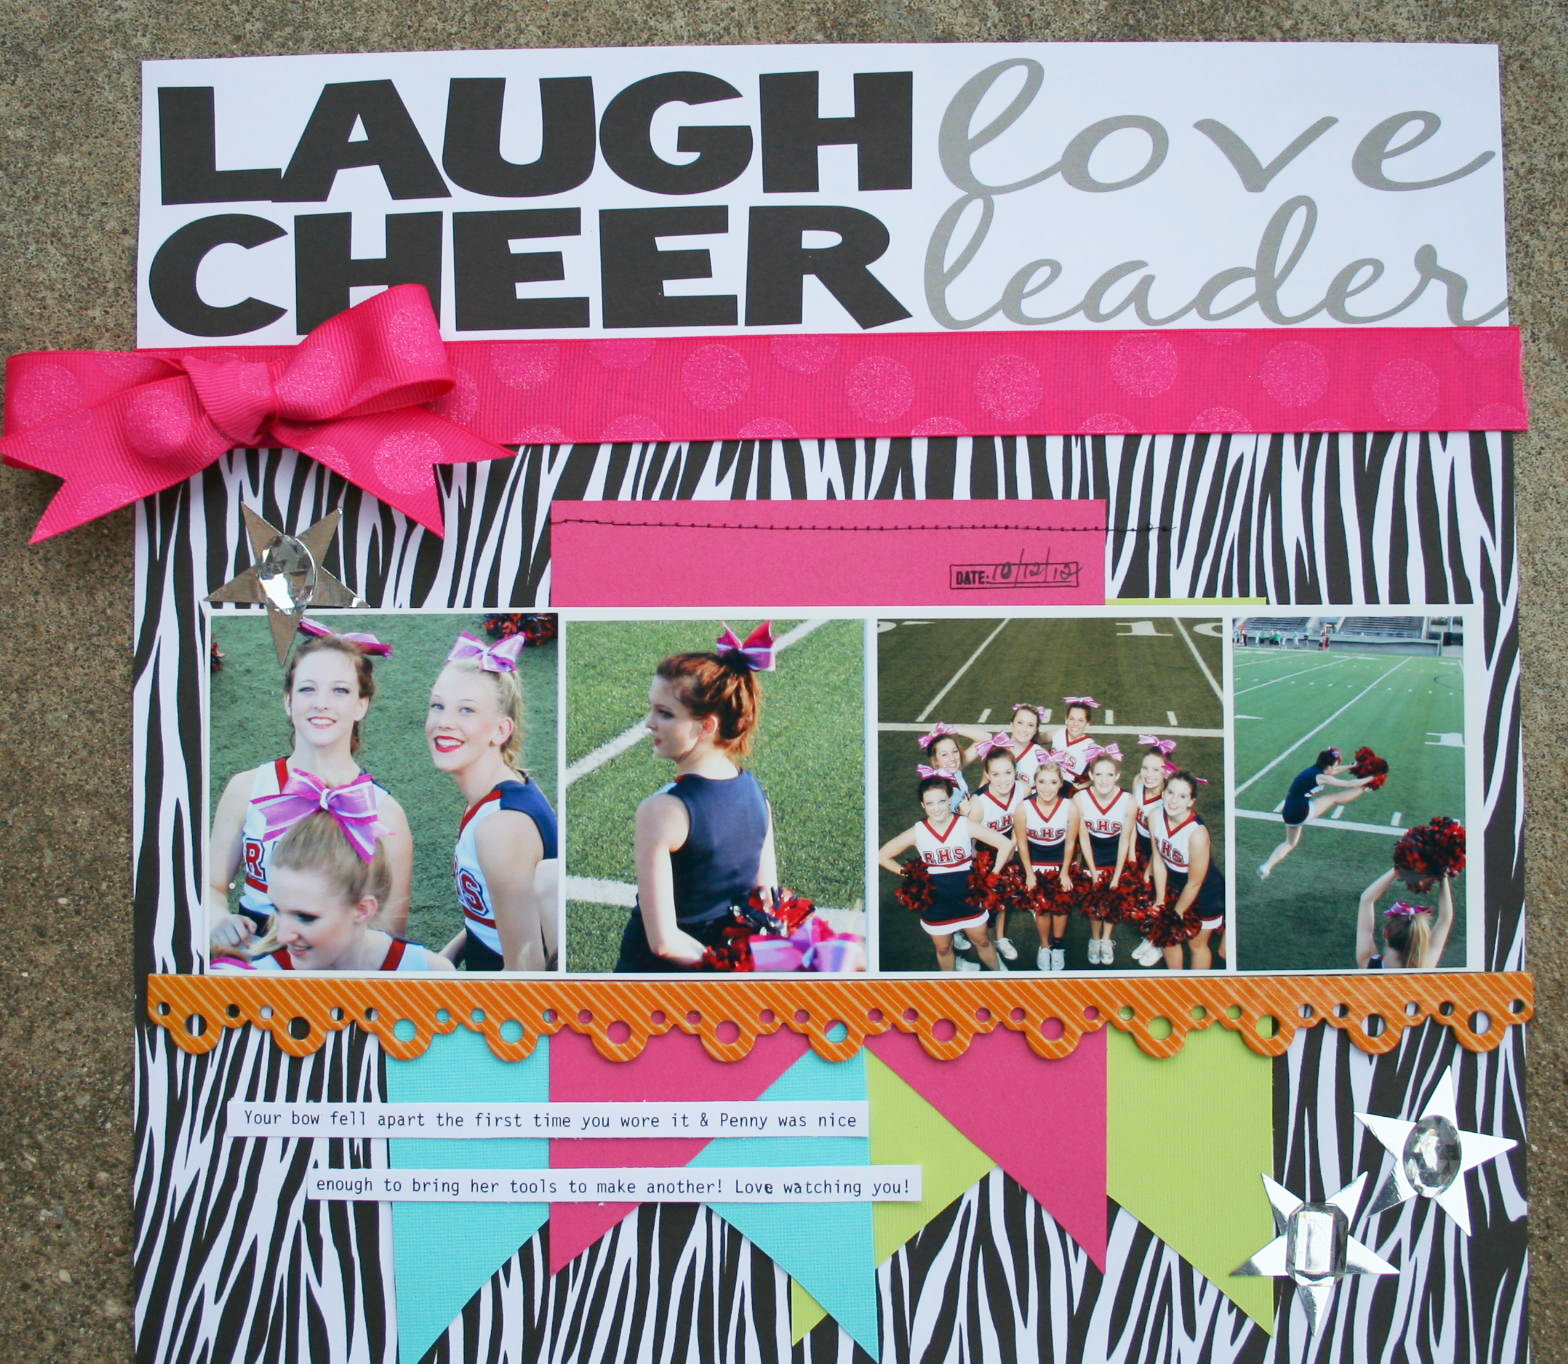 Laugh, Love, Cheer, Leader